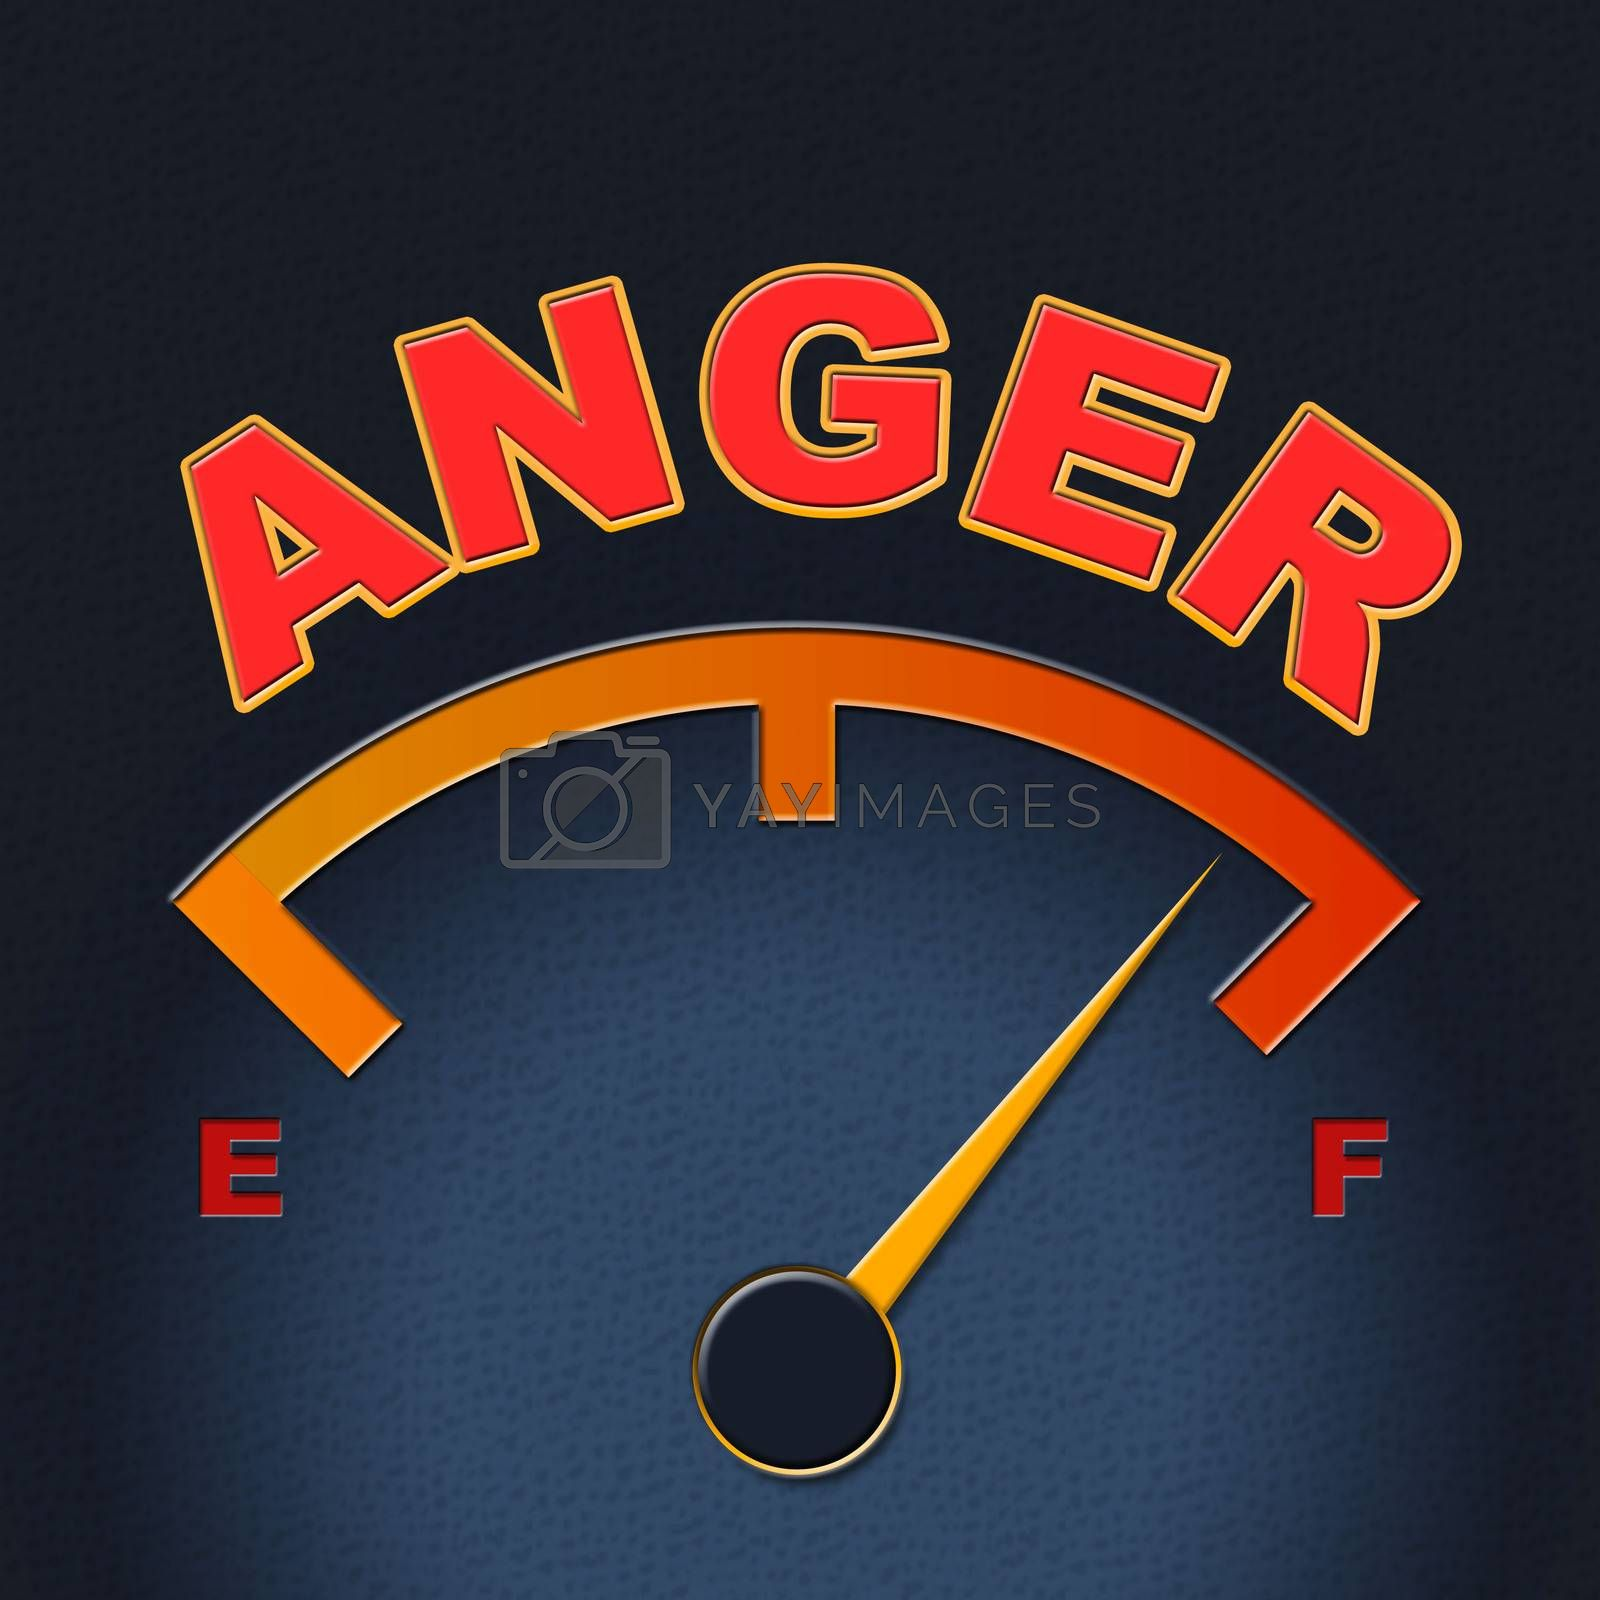 Anger Gauge Means Annoy Annoyed And Rage by stuartmiles